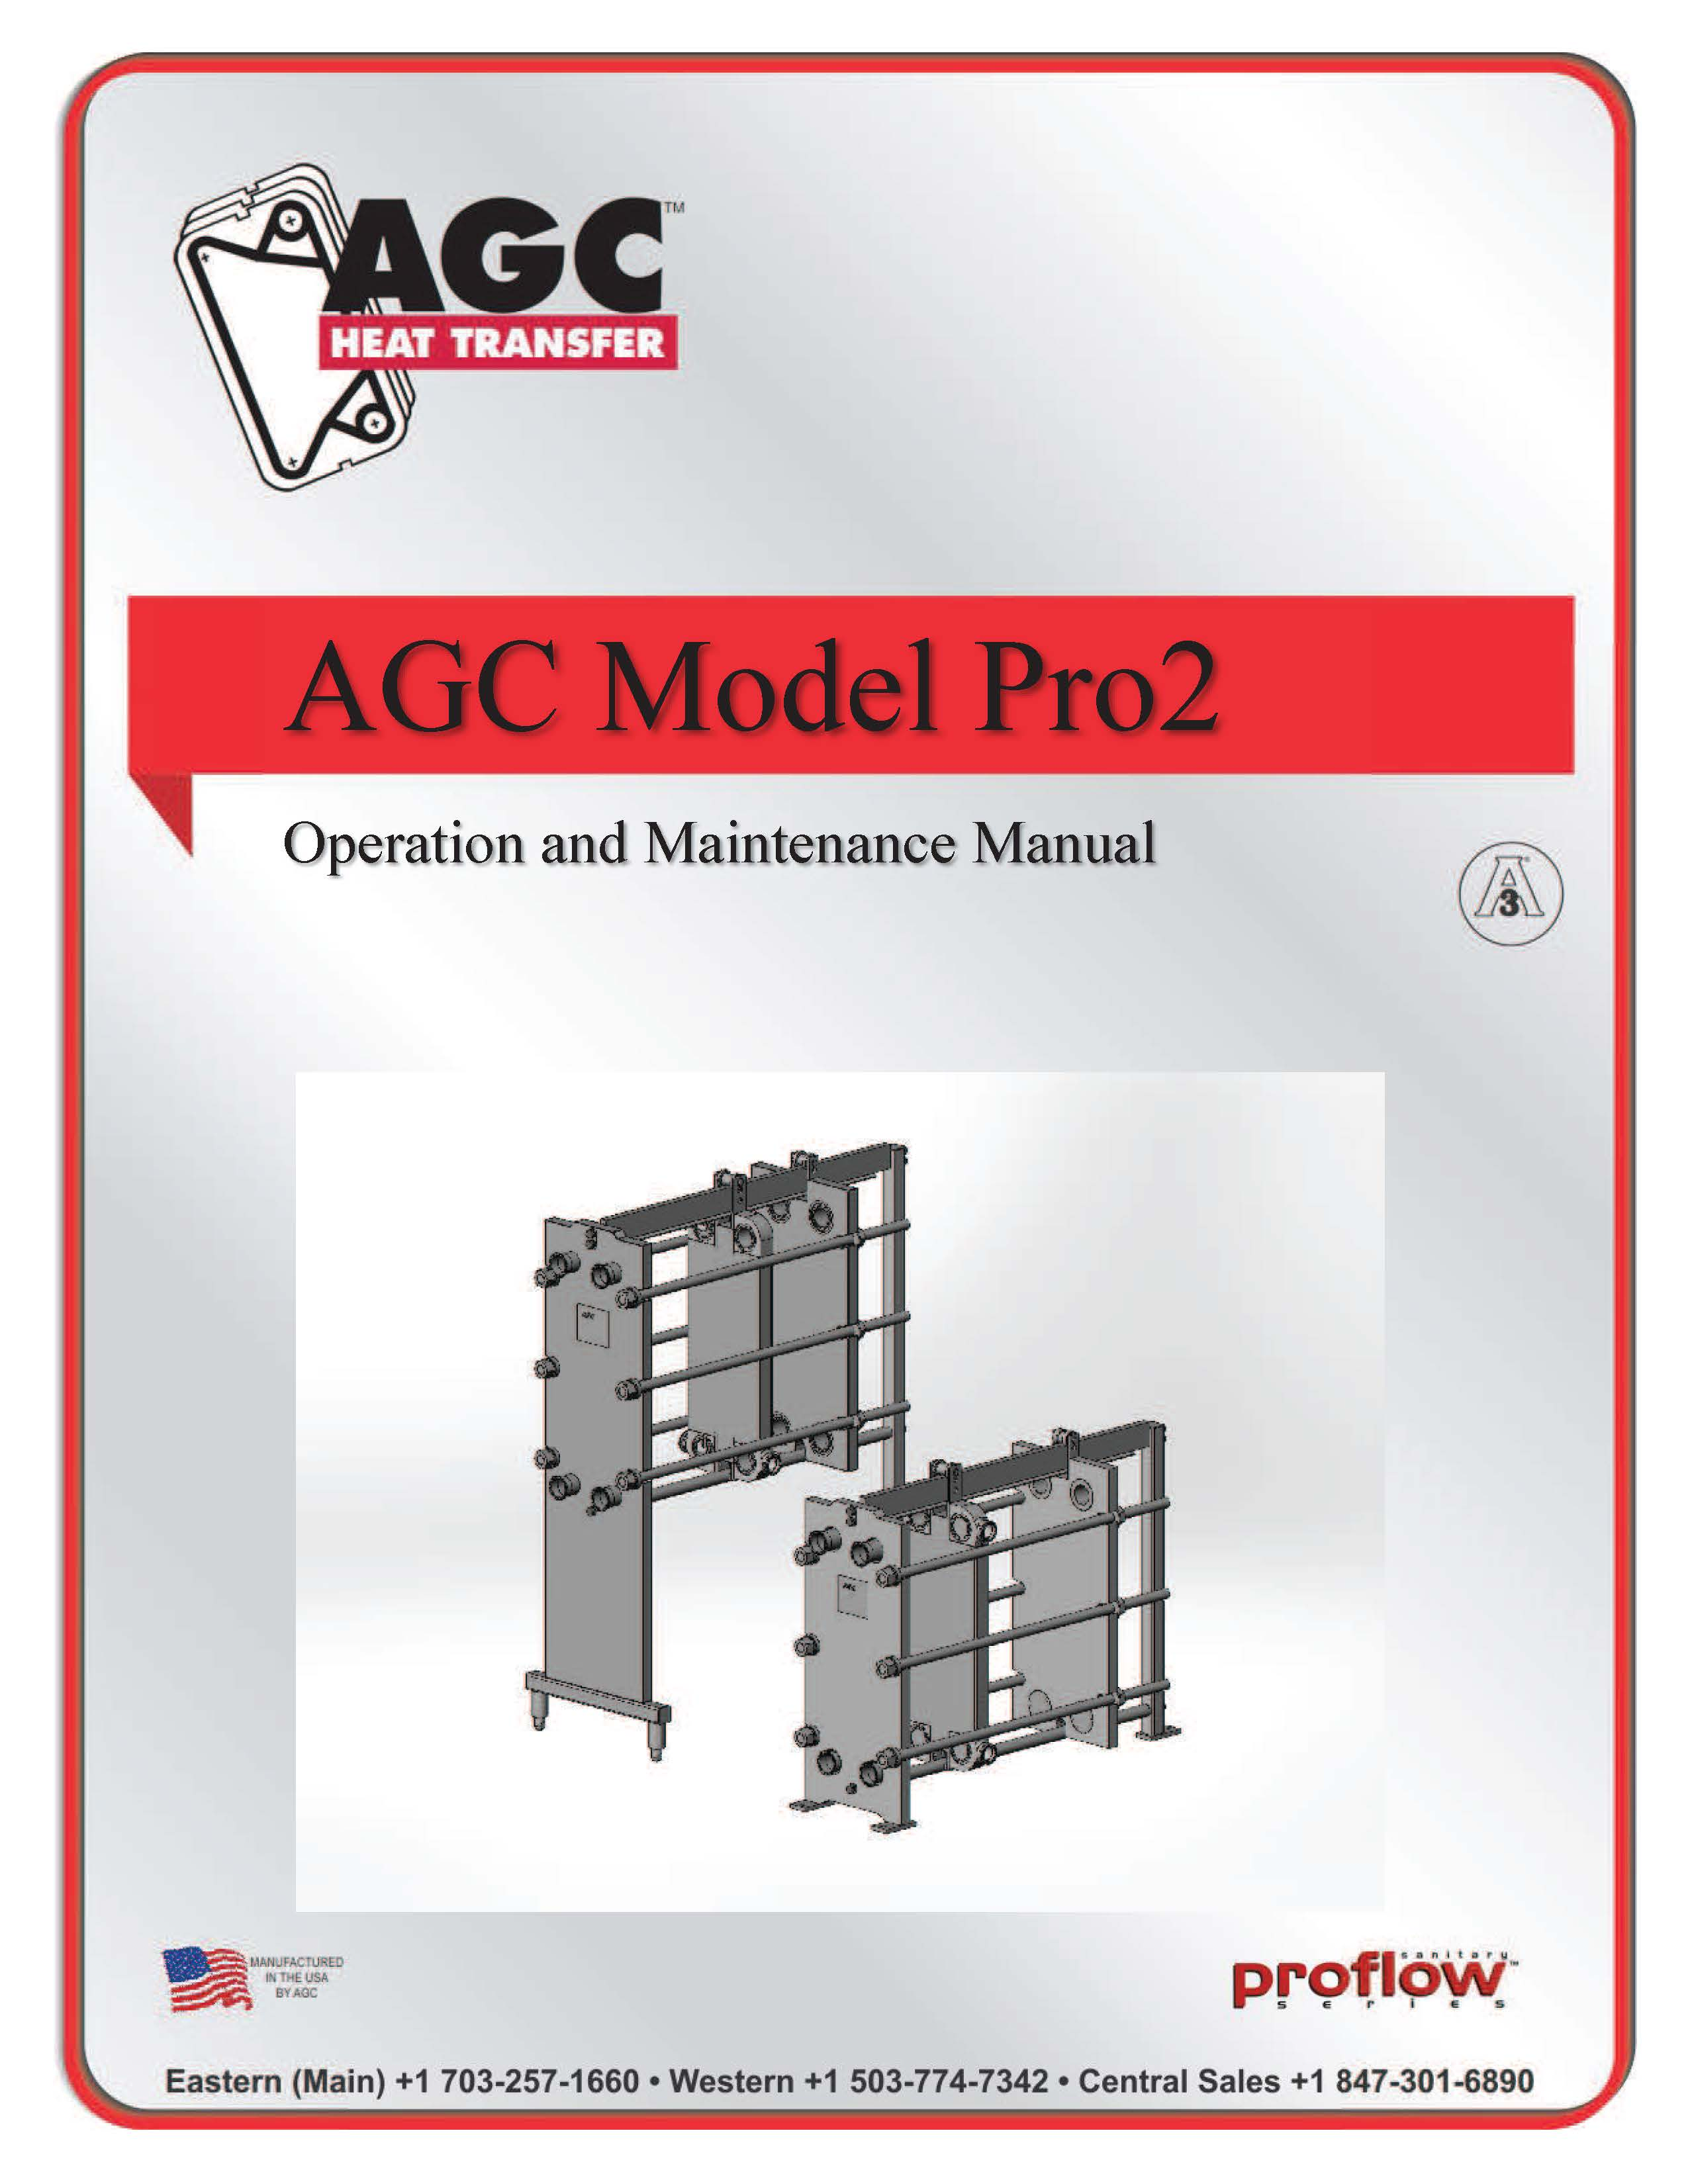 AGC Operating Manual Pro2